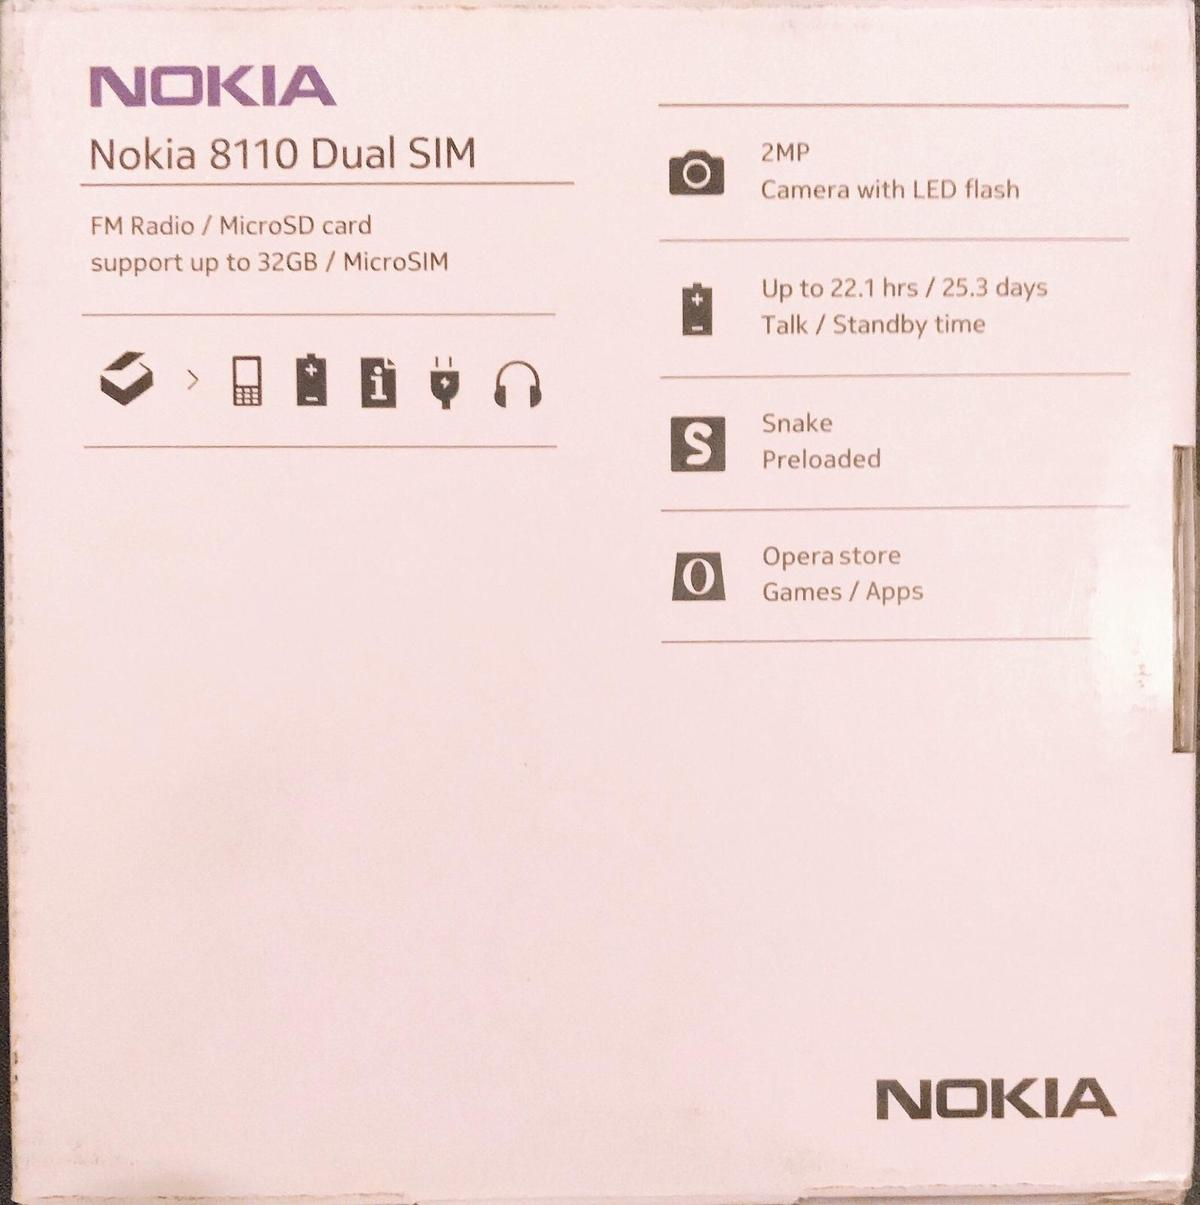 Nokia 8110 in E6 Newham for £15 00 for sale - Shpock